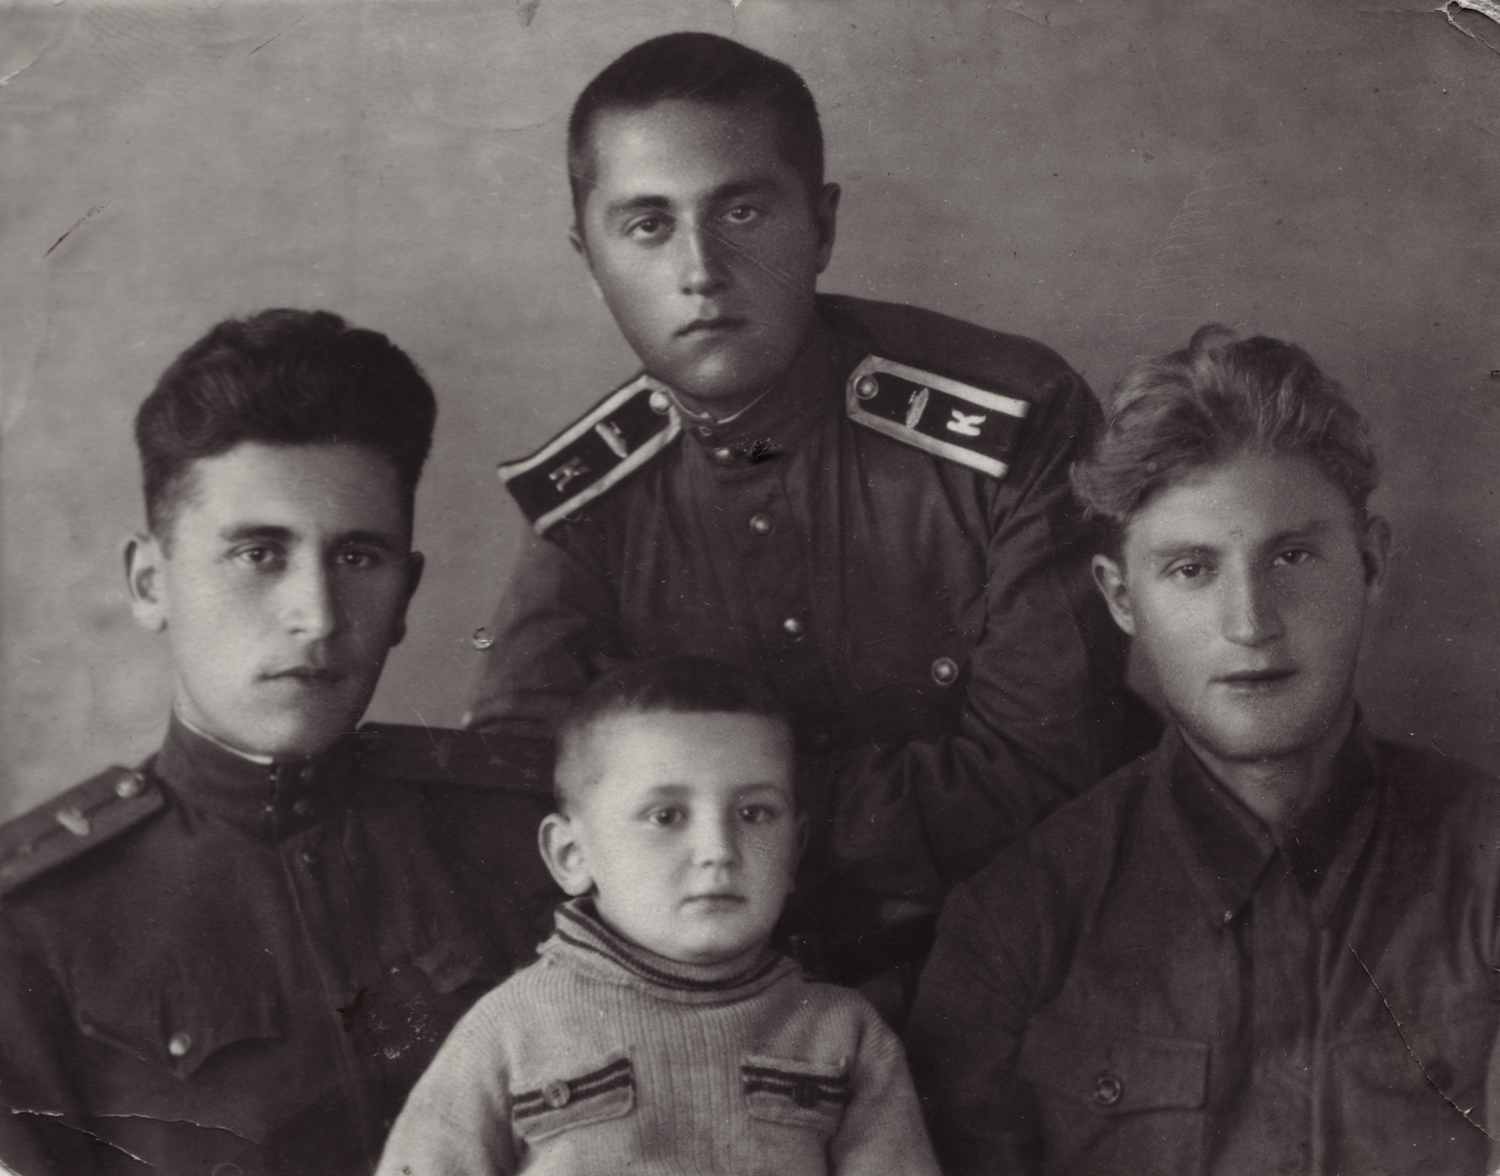 Brother Boris, Yakov and Semyon Kofman fought in the war; Yakov died at the front.